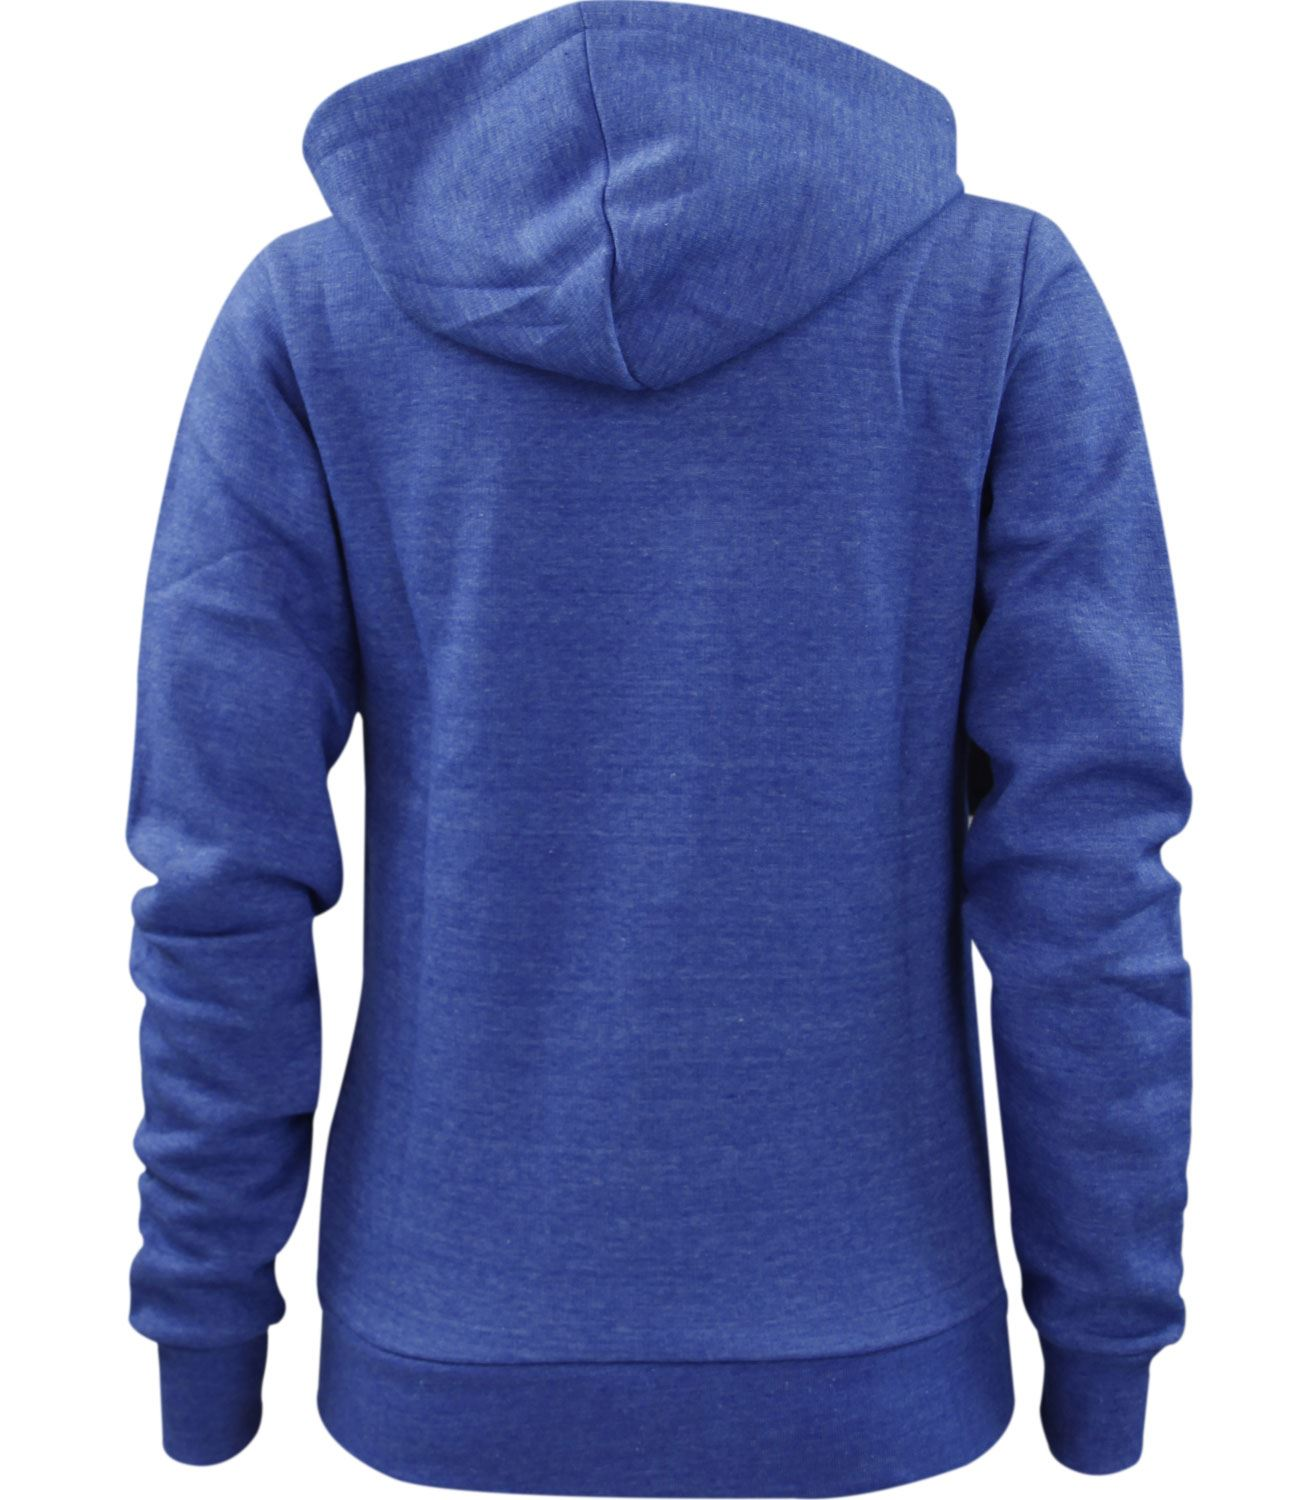 Keep warm with our collection of soft fleece Women's Hoodies in pullover and zip-up styles at American Eagle Outfitters. Women's Jeans View All AE Sherpa Full Zip Hoodie Regular Price $ Sale Price $ Launch product quickview.